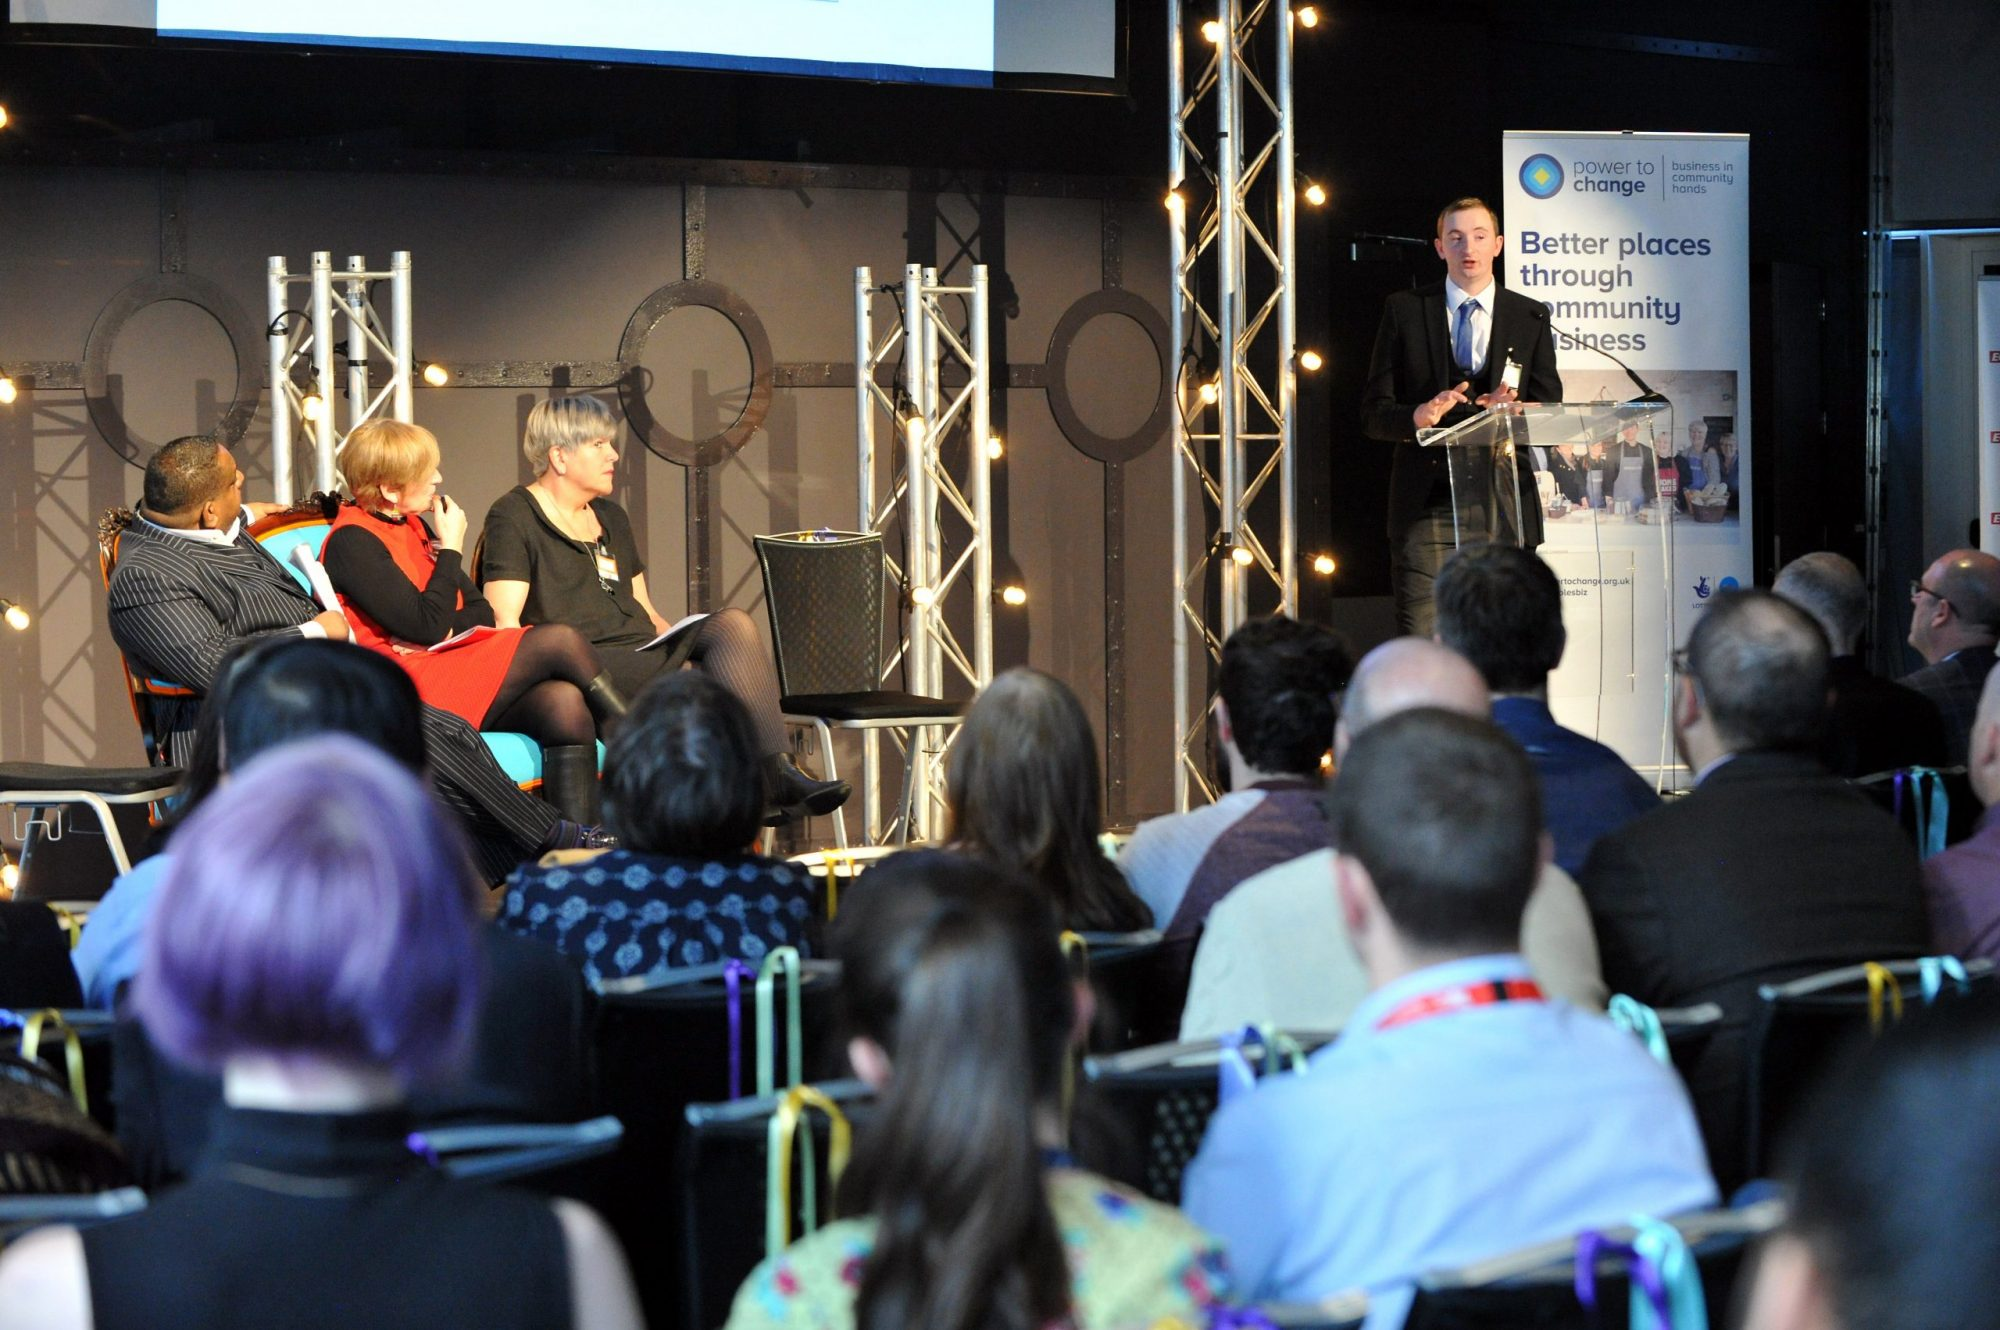 The M&S Community Business Challenge kicks off in Liverpool